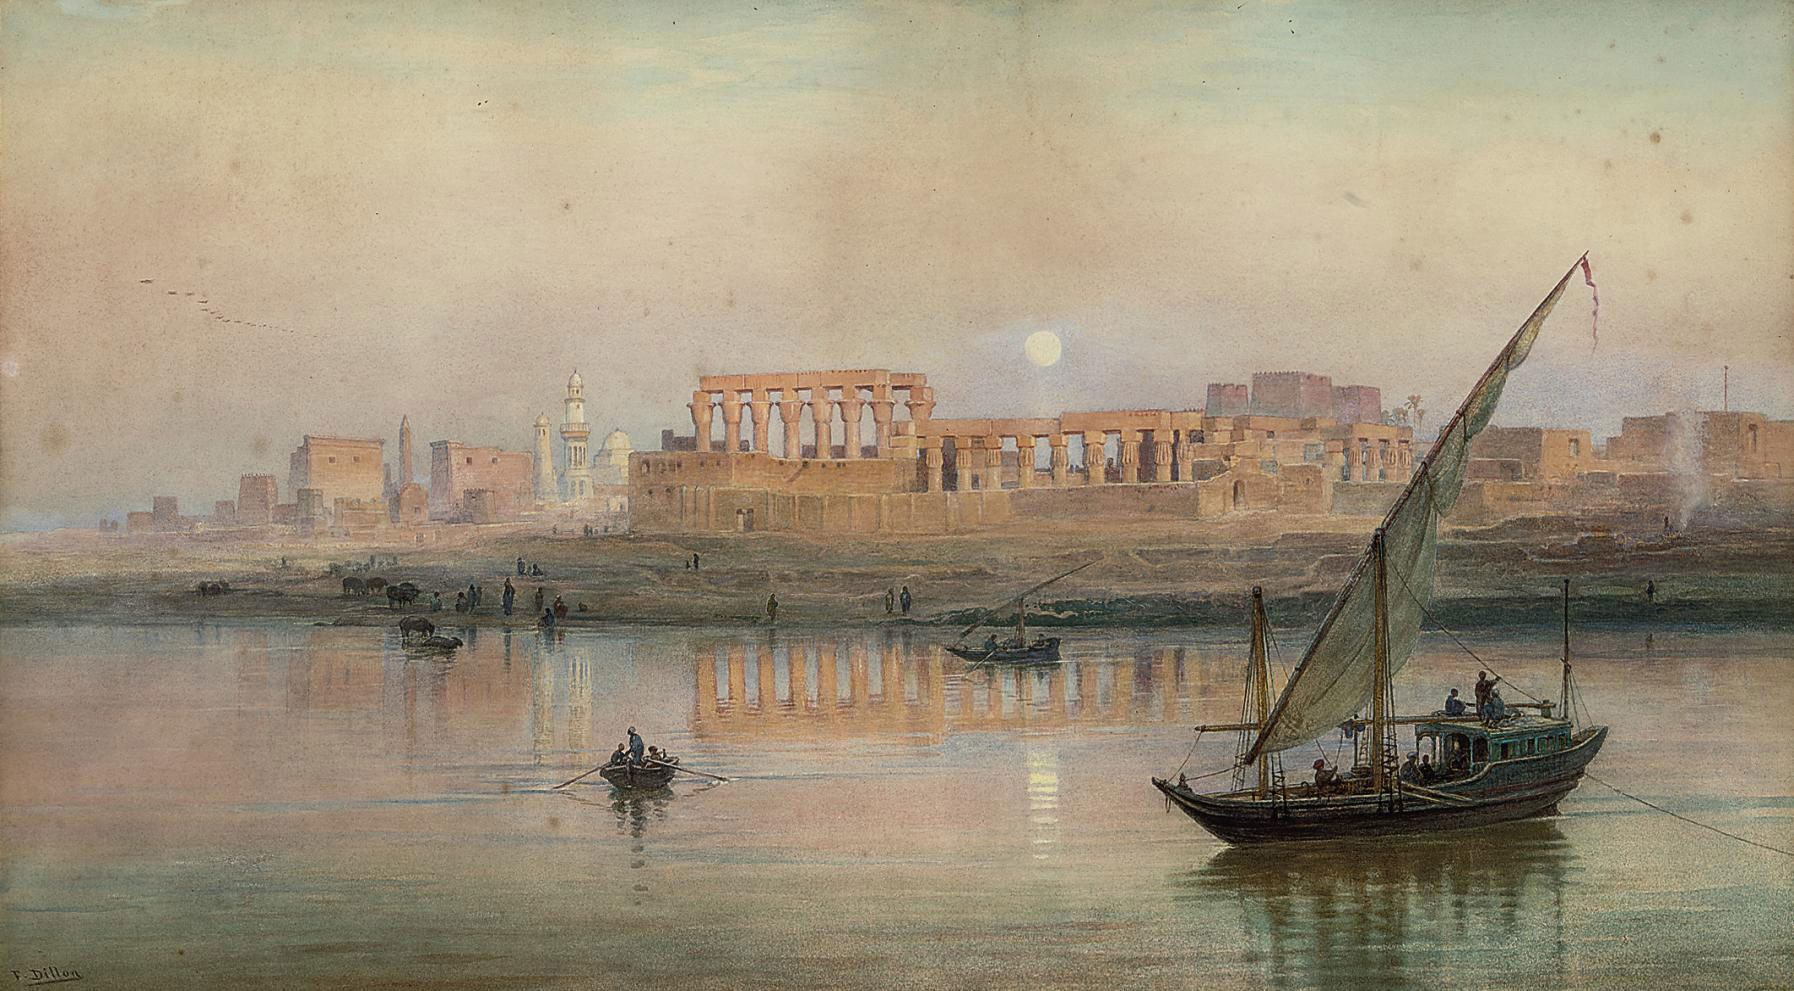 A view of Luxor on the Nile, with Karnak